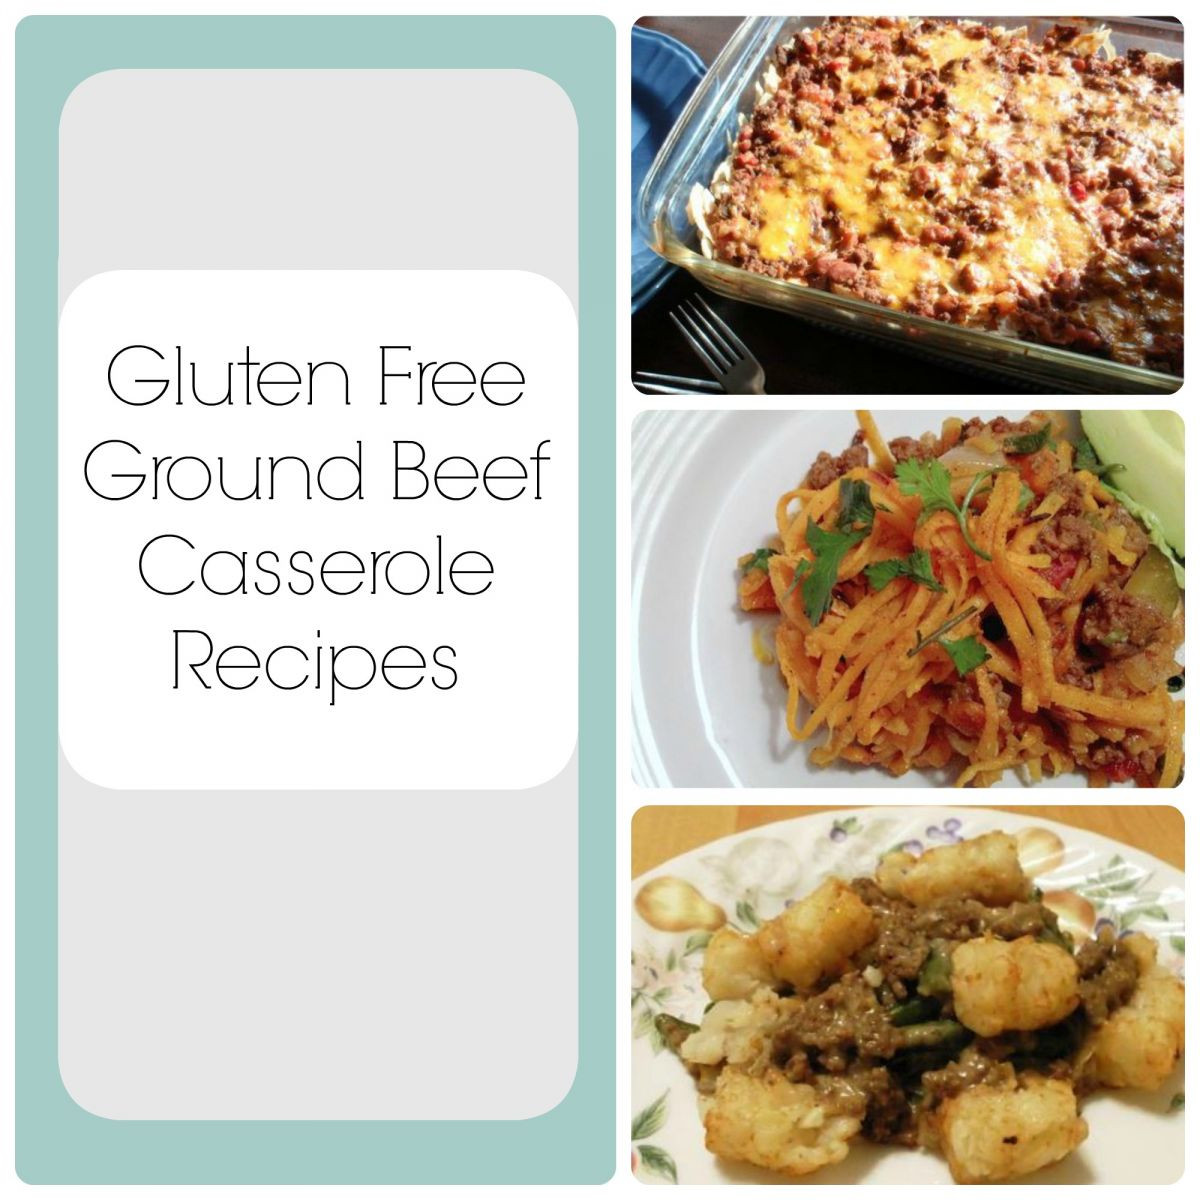 Gluten Free Recipes With Ground Beef  ly the Best Gluten Free Recipes 8 Ground Beef Casserole